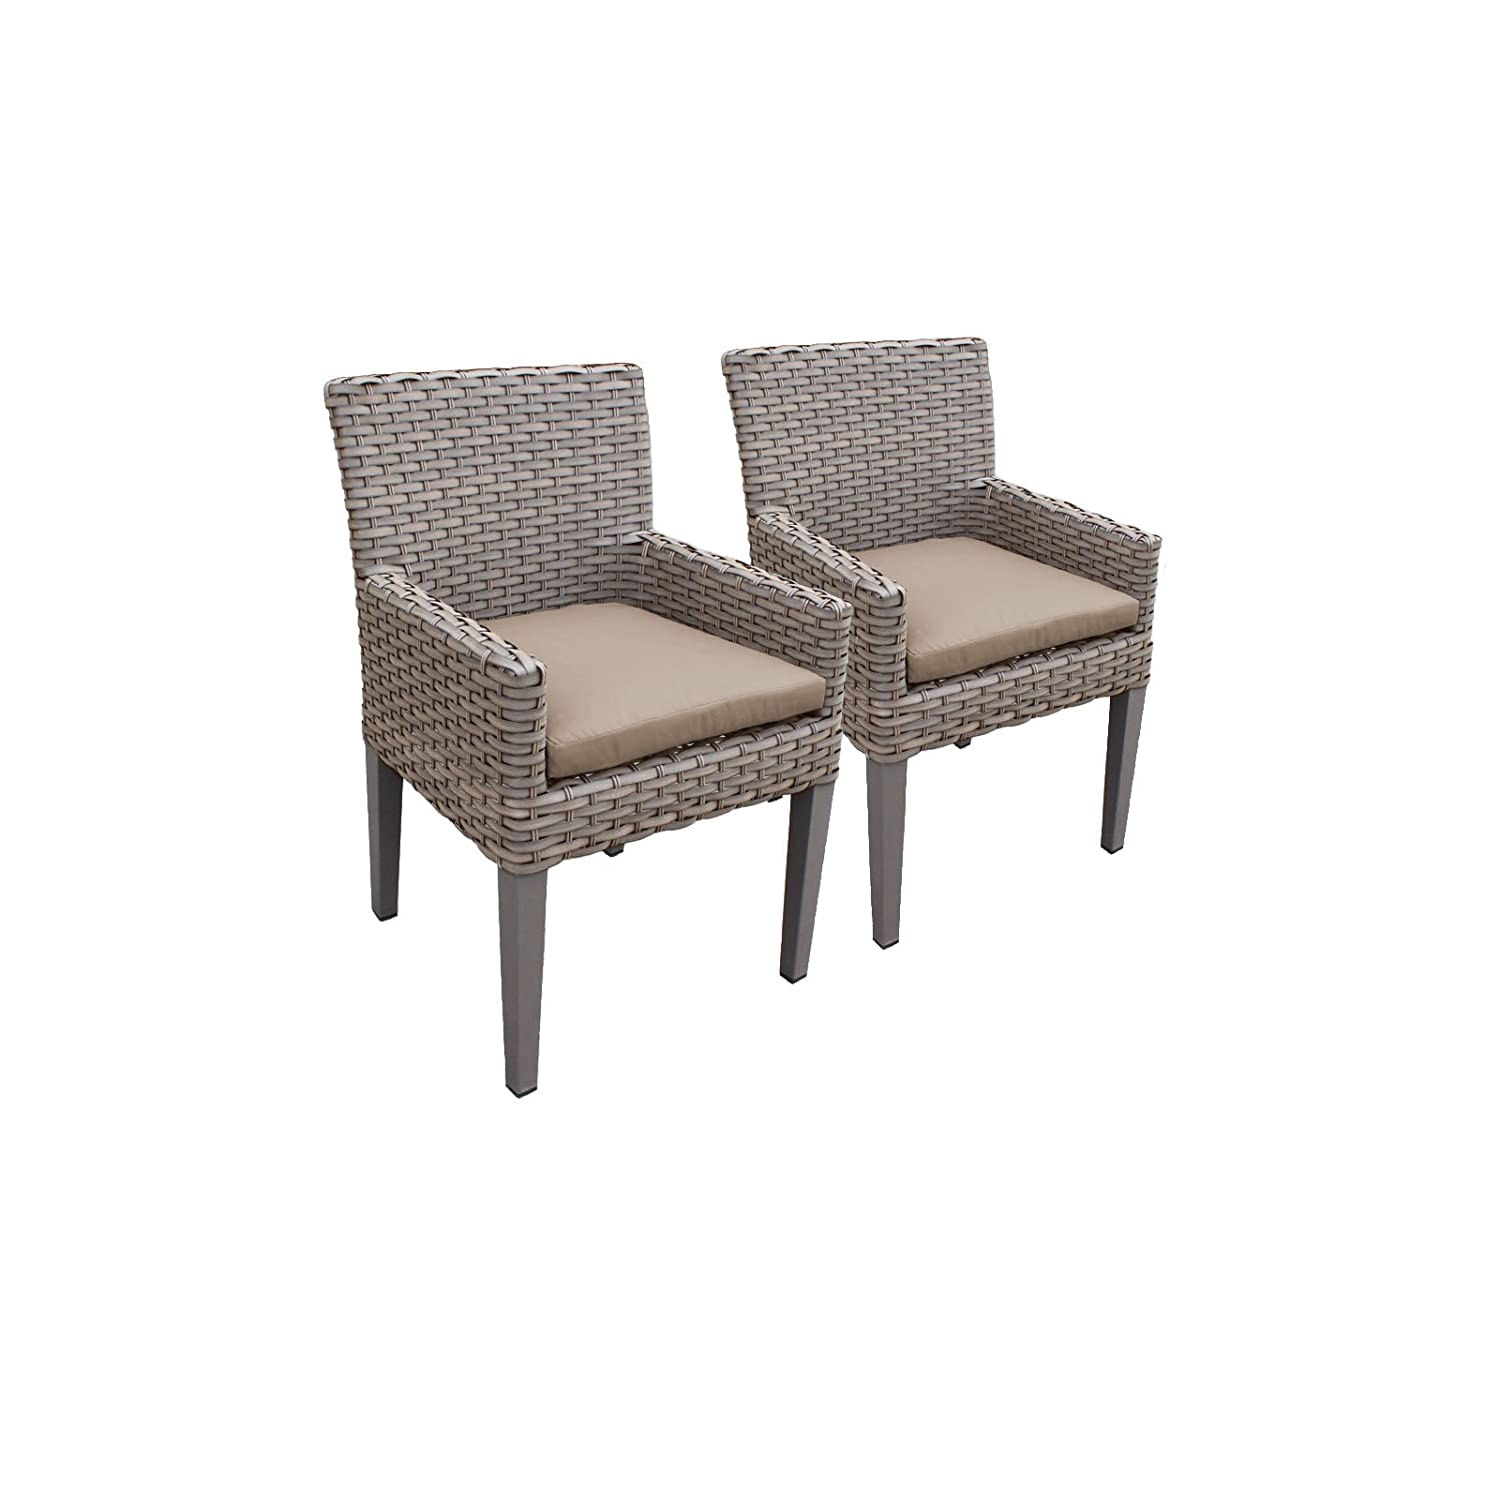 Amazon com tk classics oasis 2 piece dining chairs arms cocoa garden outdoor